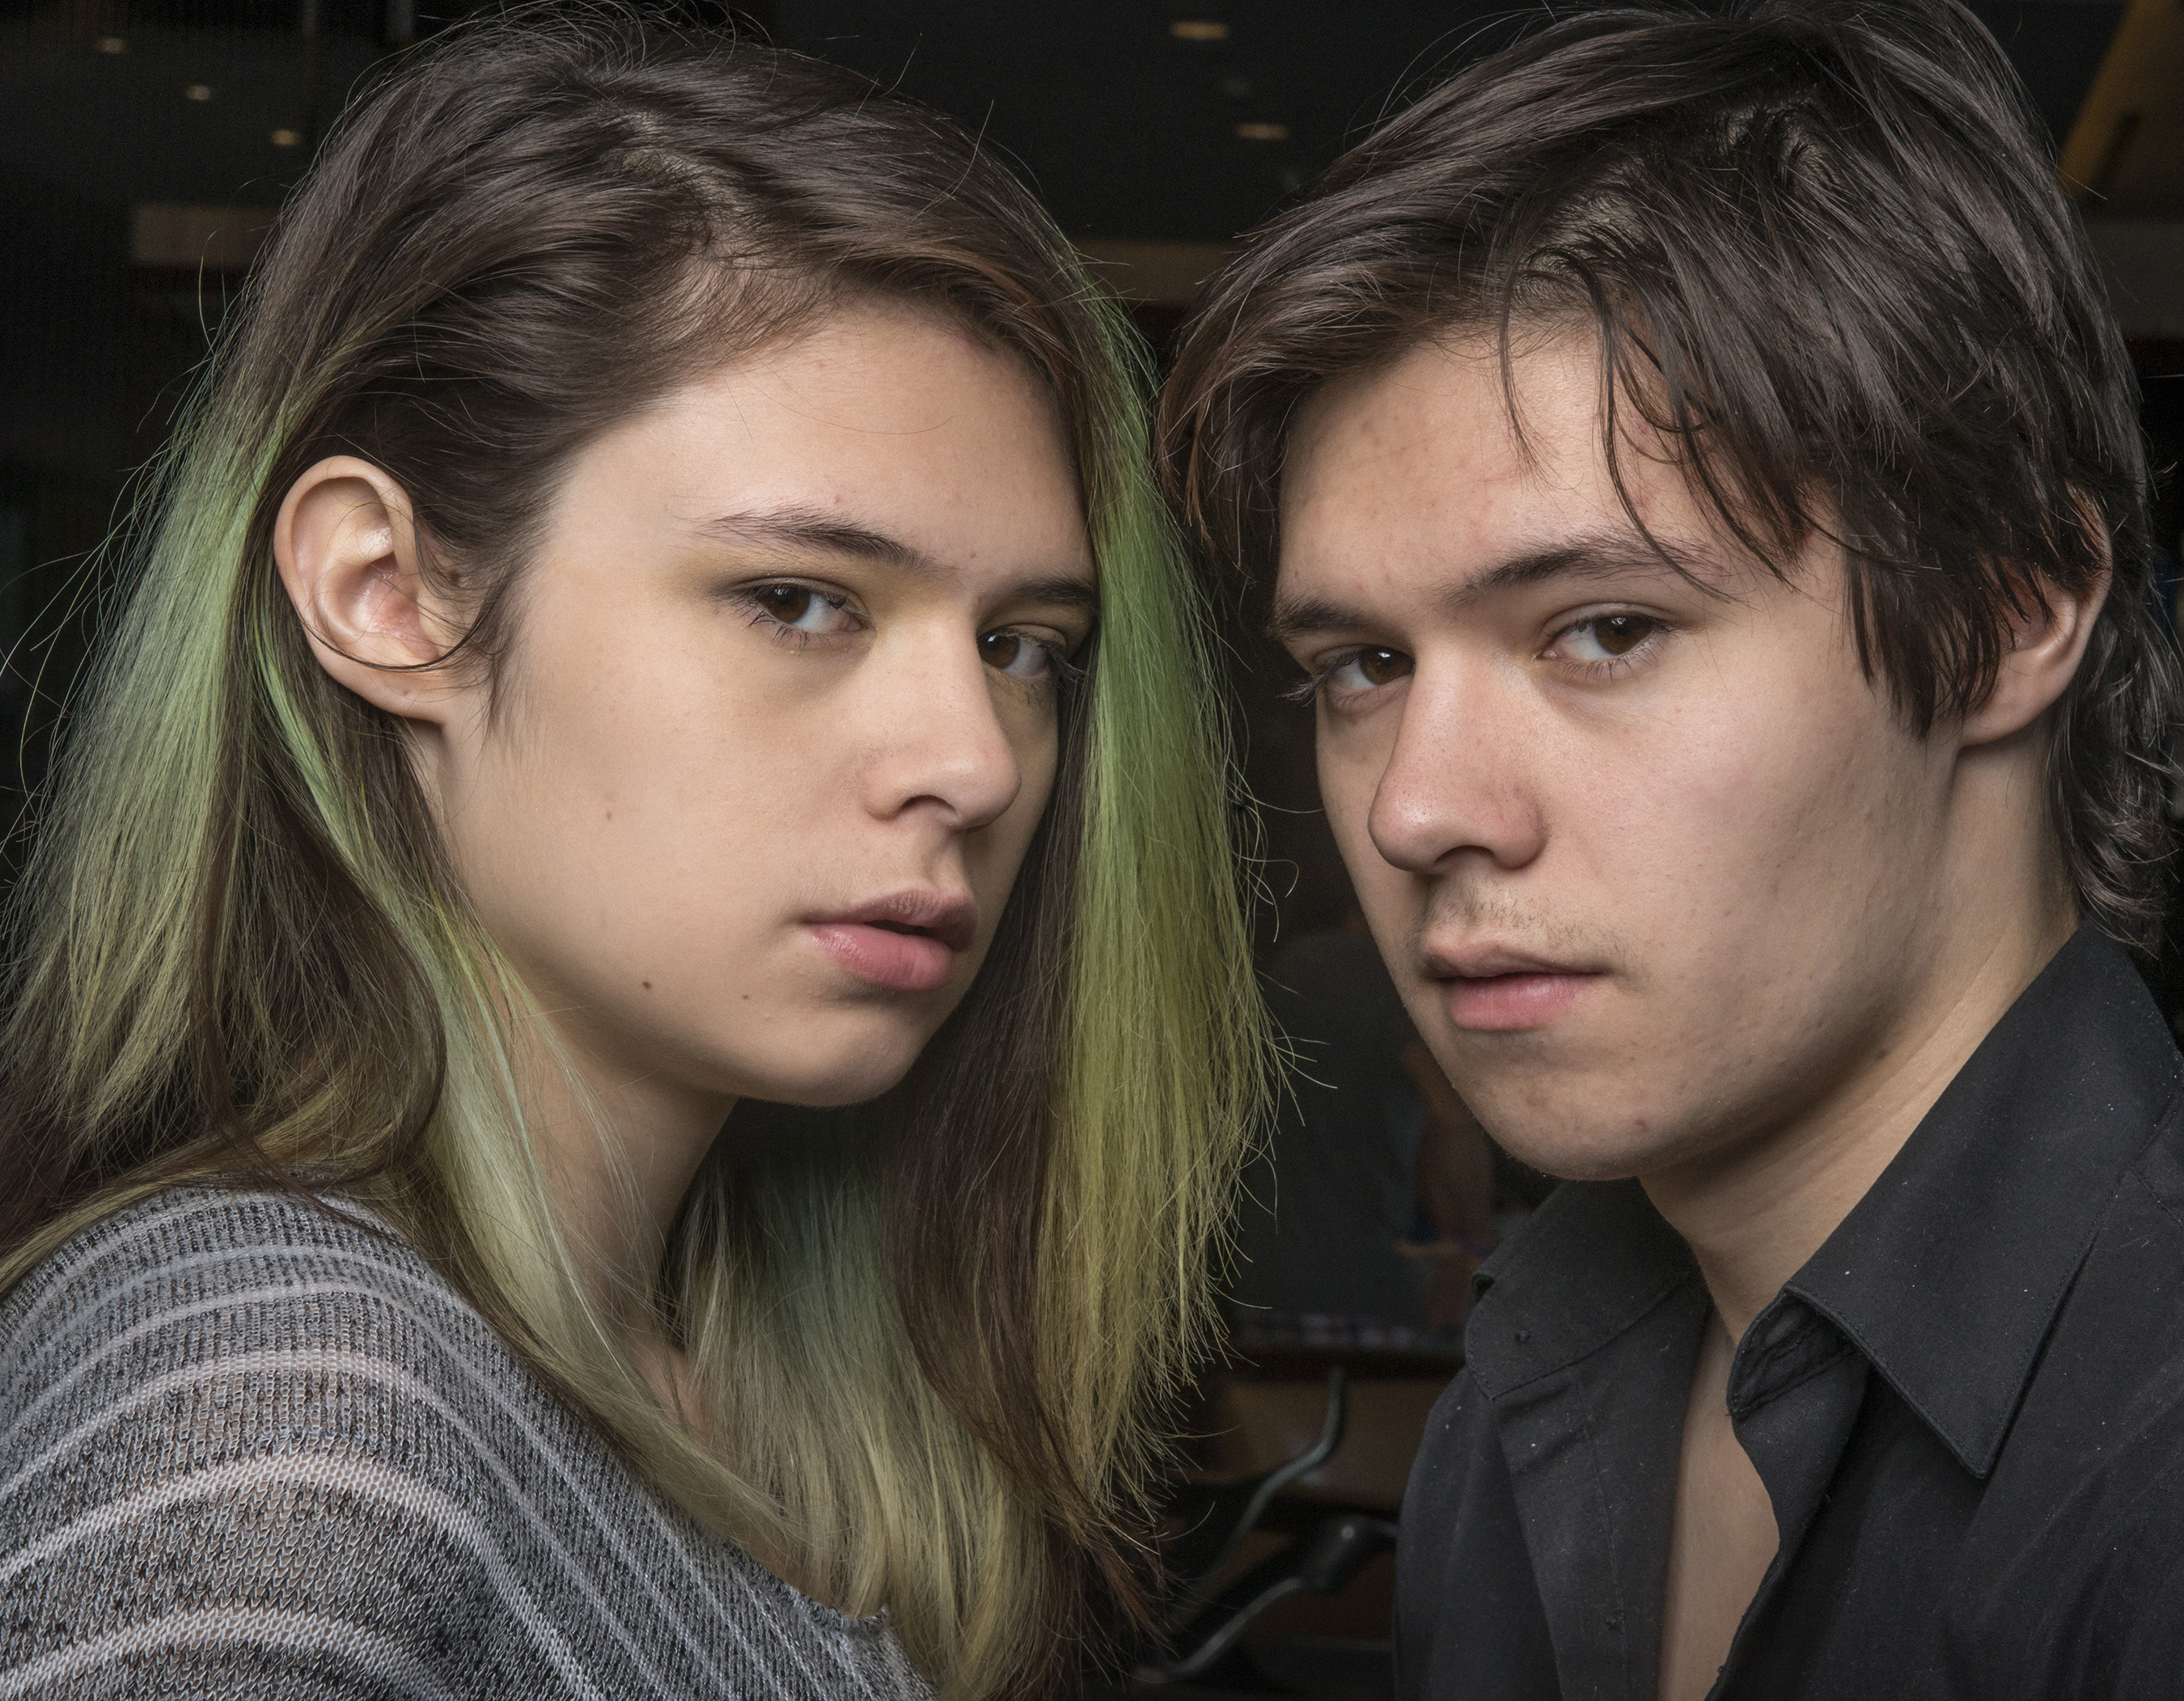 Jonas, right, and Nicole Maines, both 18, in Denver, CO, on Oct. 10, 2015.